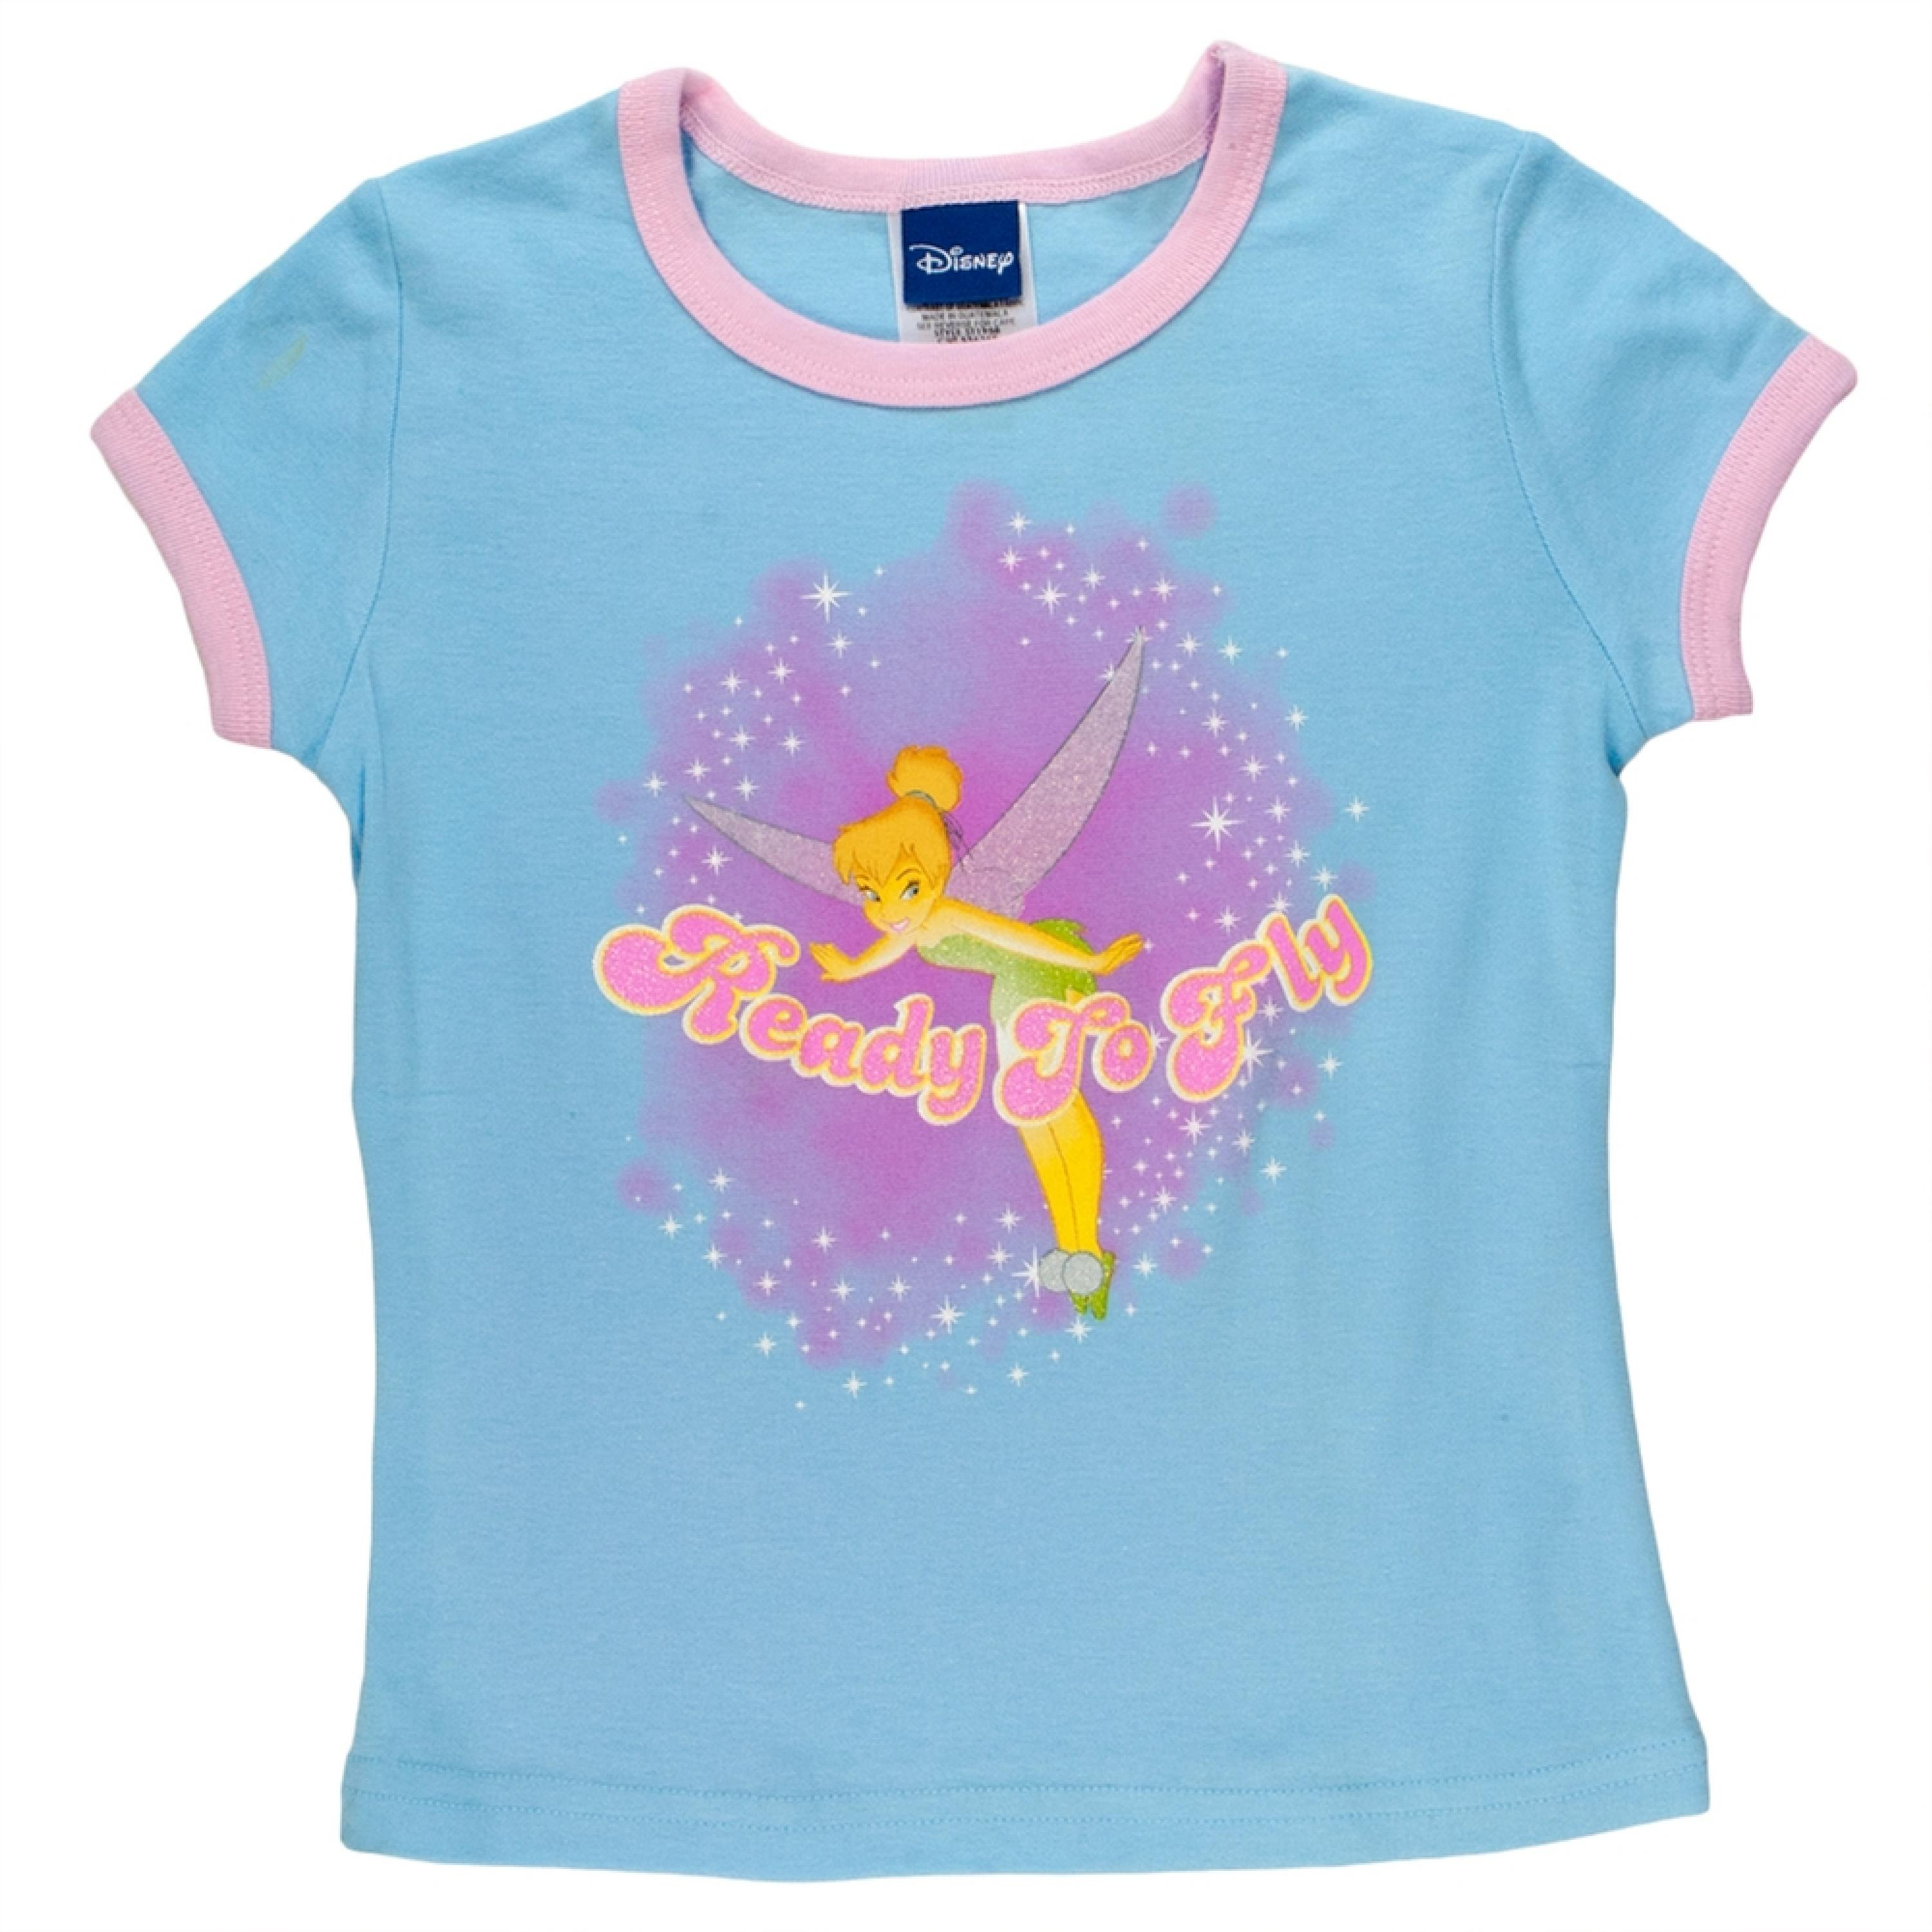 Tinkerbell - Ready To Fly Girls Youth Ringer T-Shirt